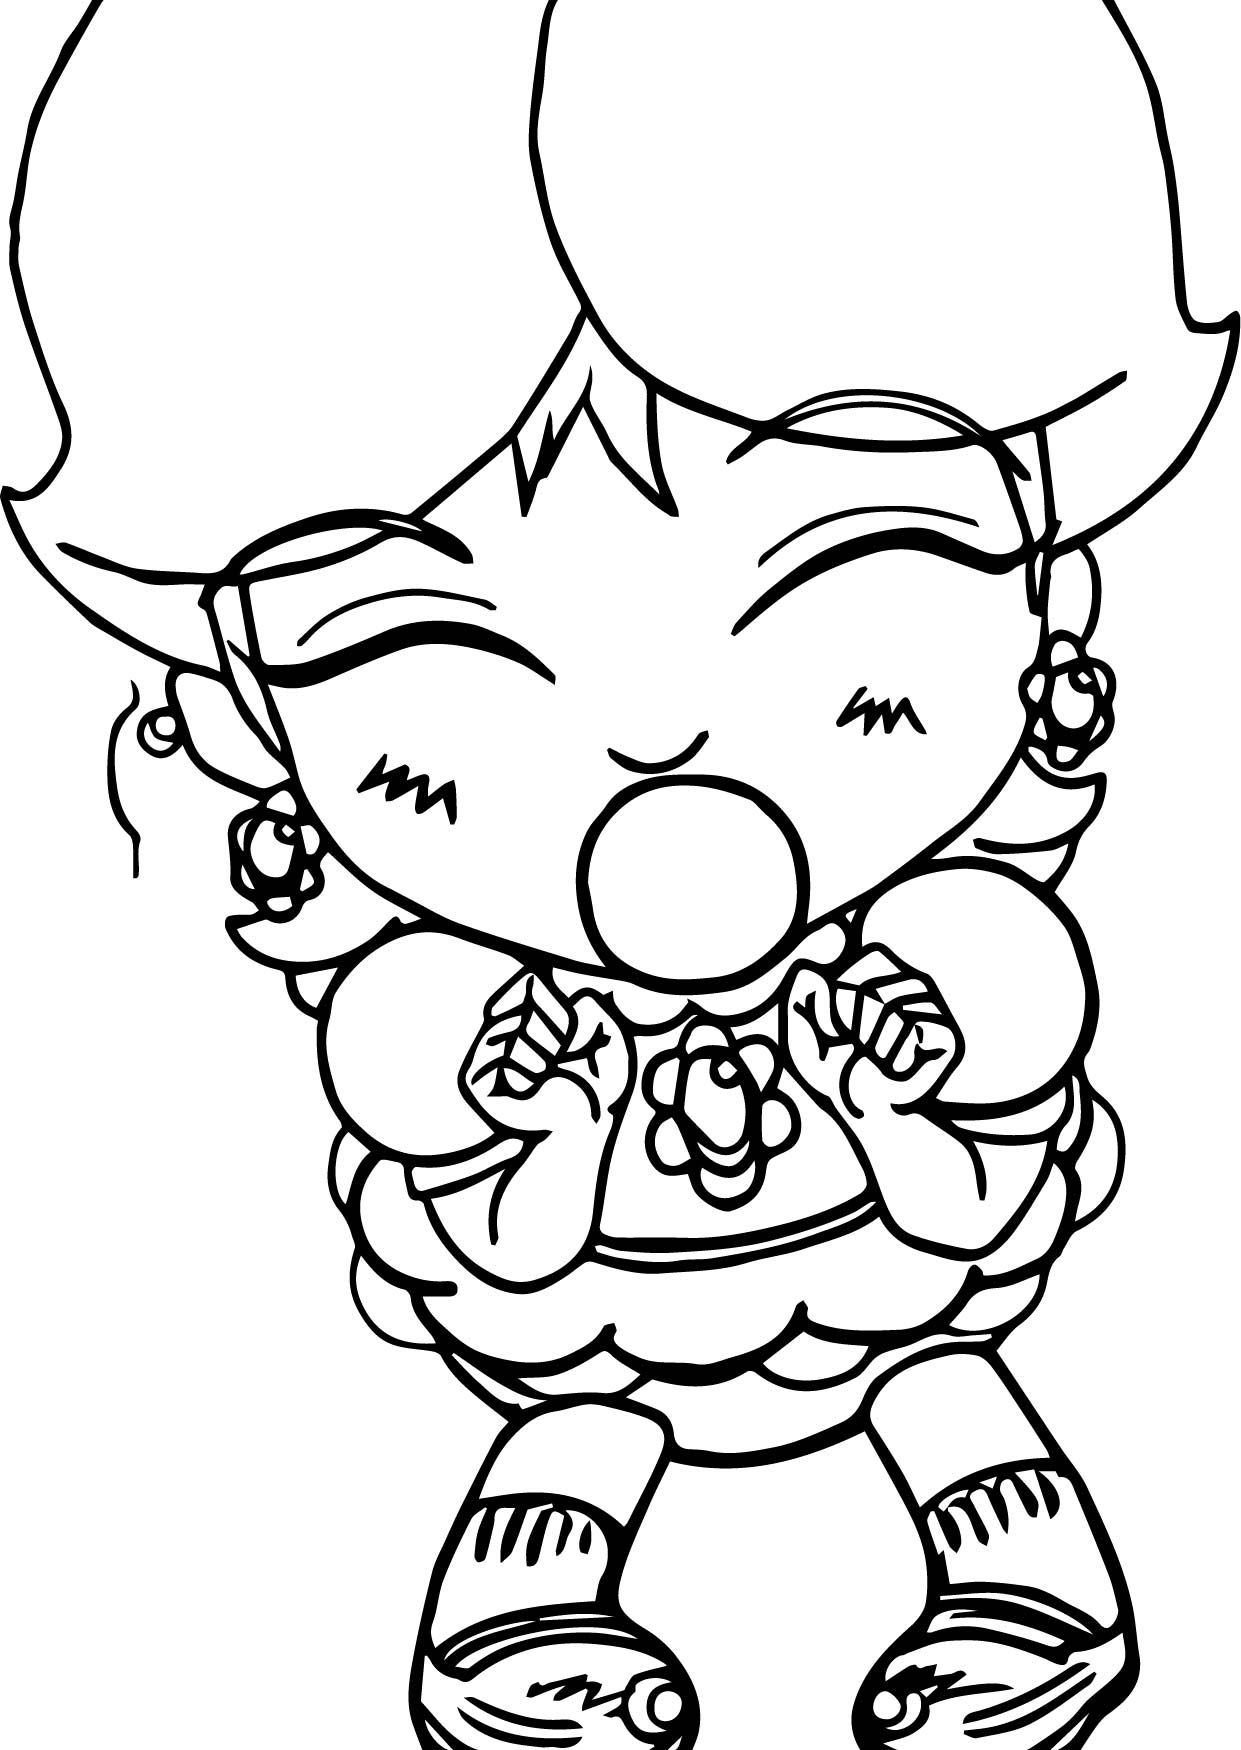 Cool Baby Daisy Bubble Gum Coloring Page Wecoloringpage